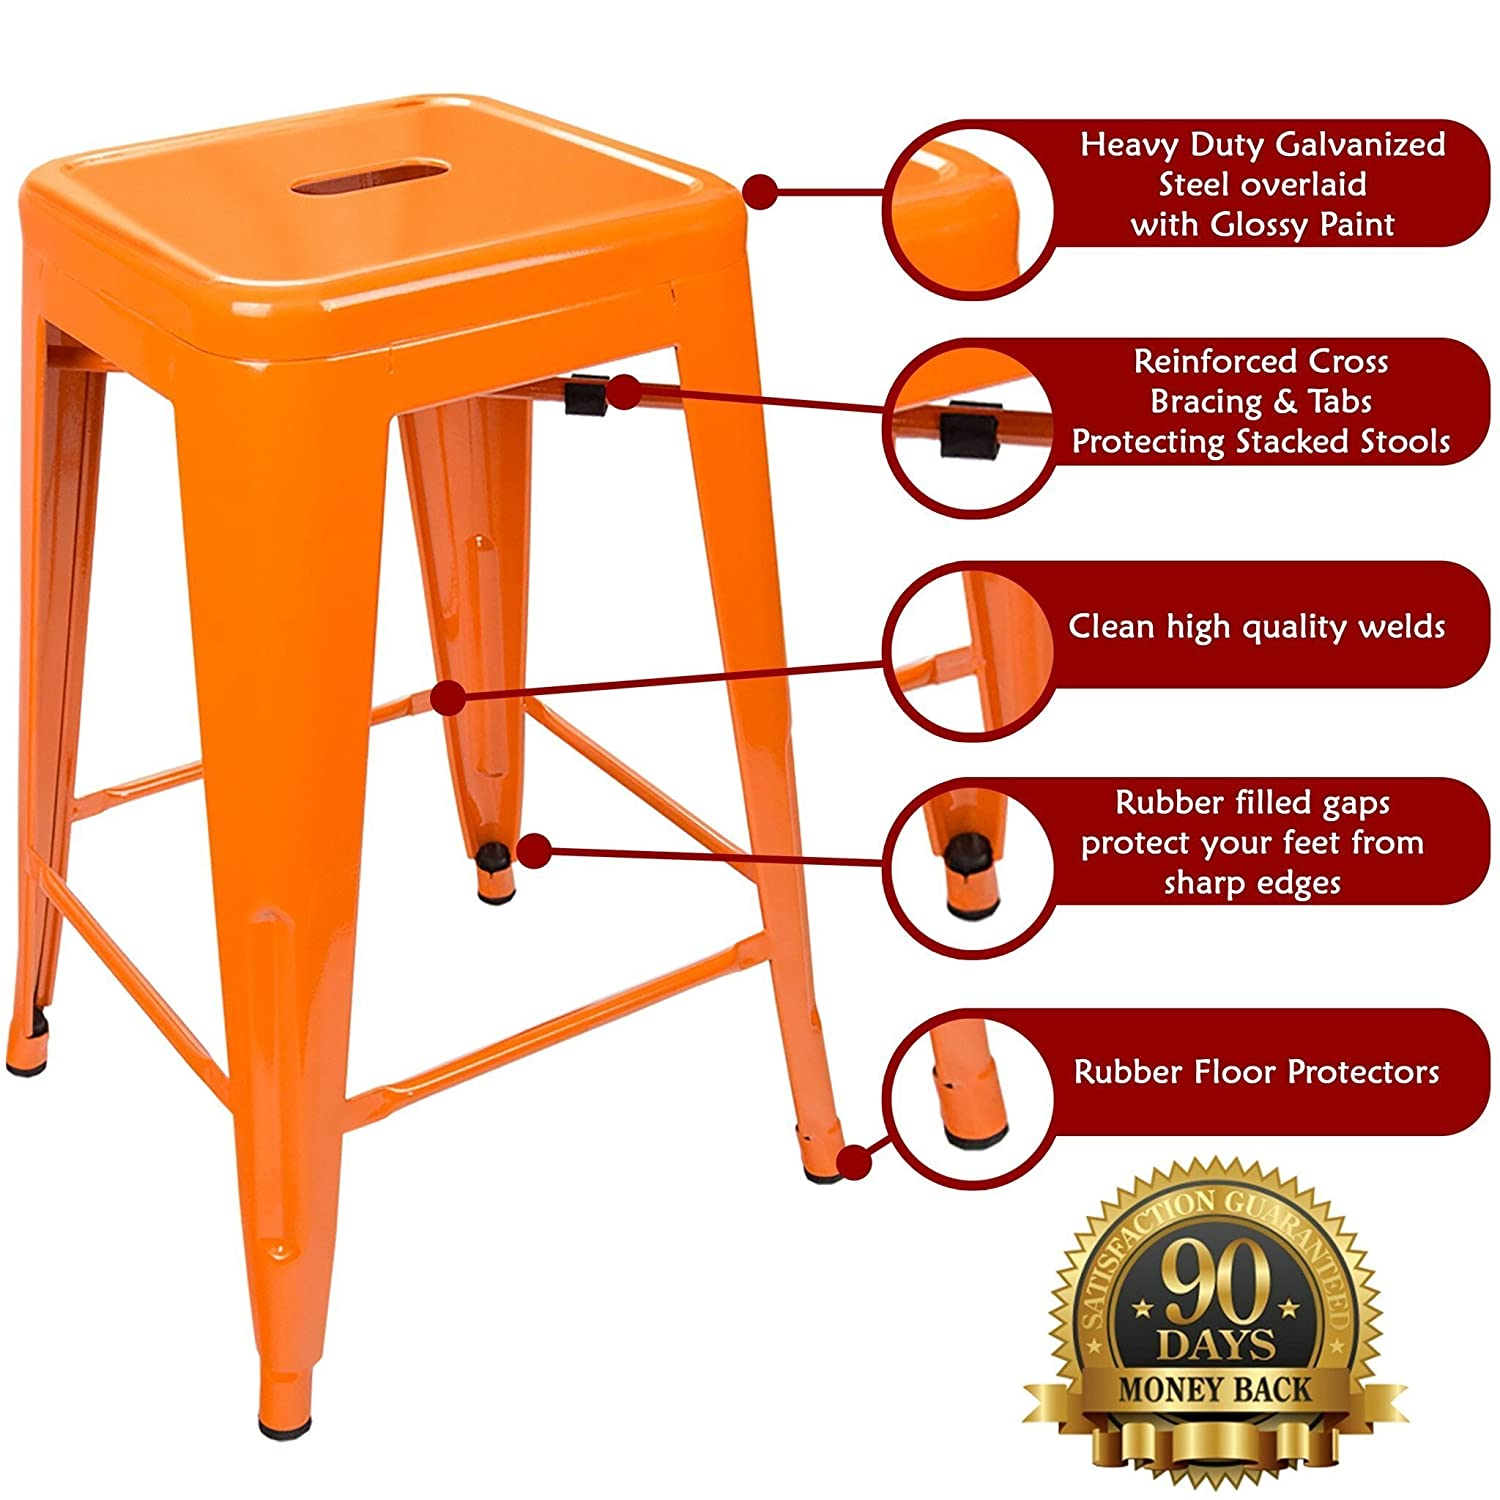 Amazon.com: 24 Counter Height Bar Stools! (ORANGE) by UrbanMod, [Set Of 4]  Stackable, Indoor/Outdoor, Kitchen Bar Stools,! 330LB Limit, Metal Bar  Stools!